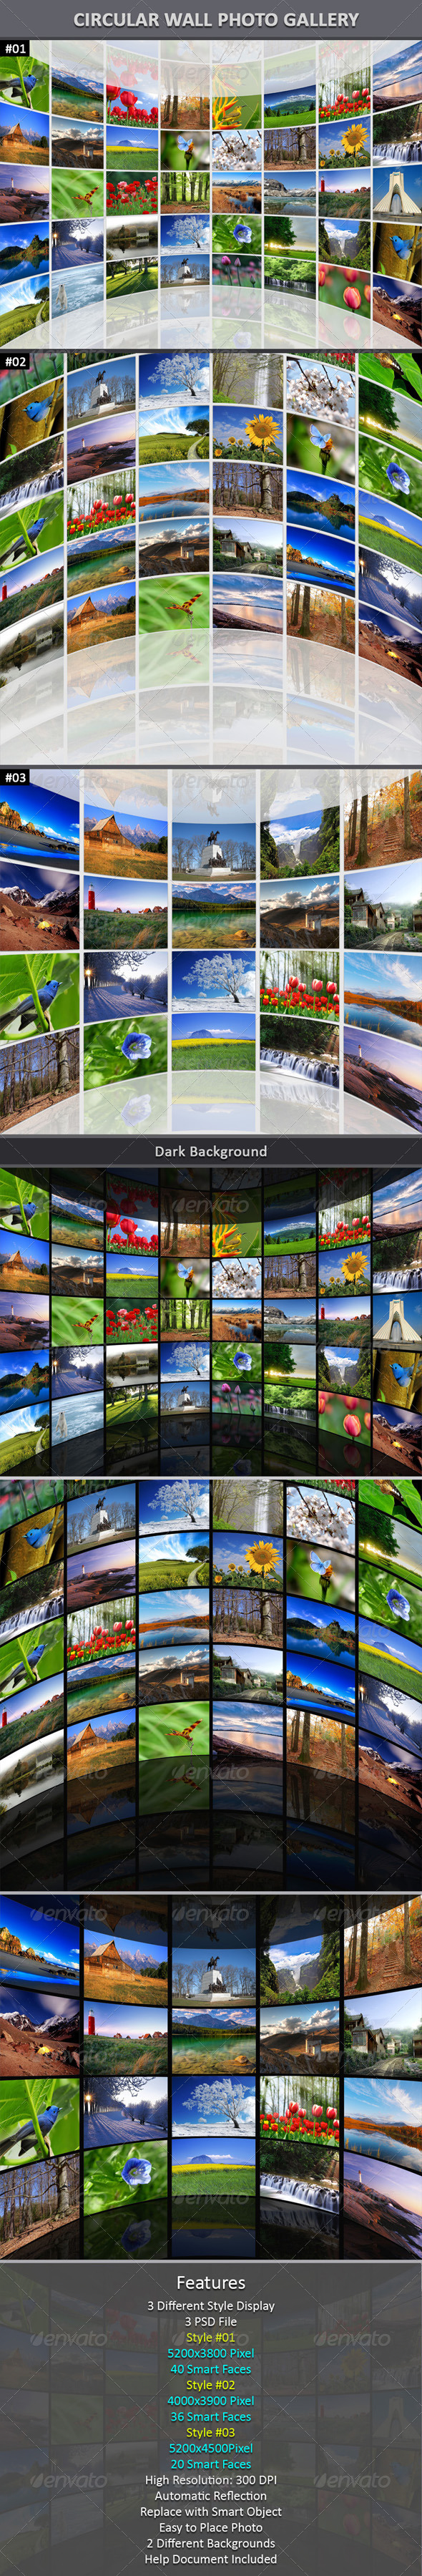 GraphicRiver Circular Wall Photo Gallery 6041480